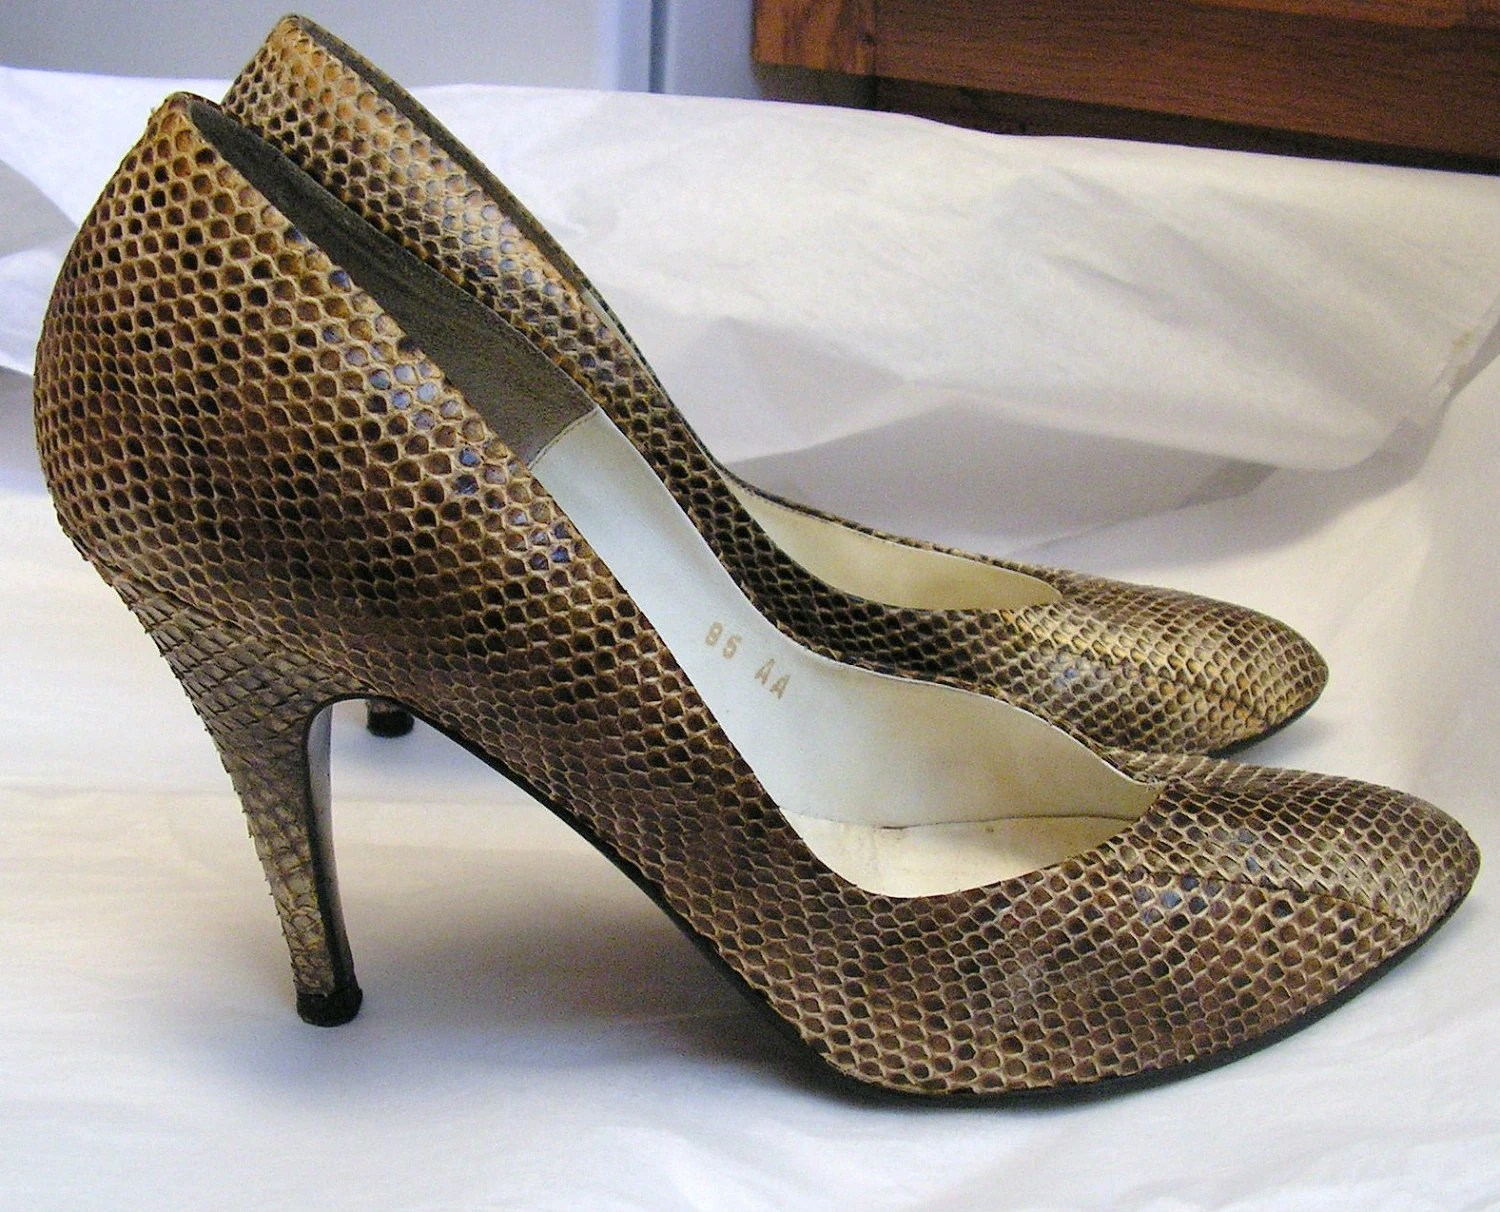 Vintage Snakeskin Pumps / Retro Stilettos / Snake Skin Shoes / US 9.5 9 1/2 AA